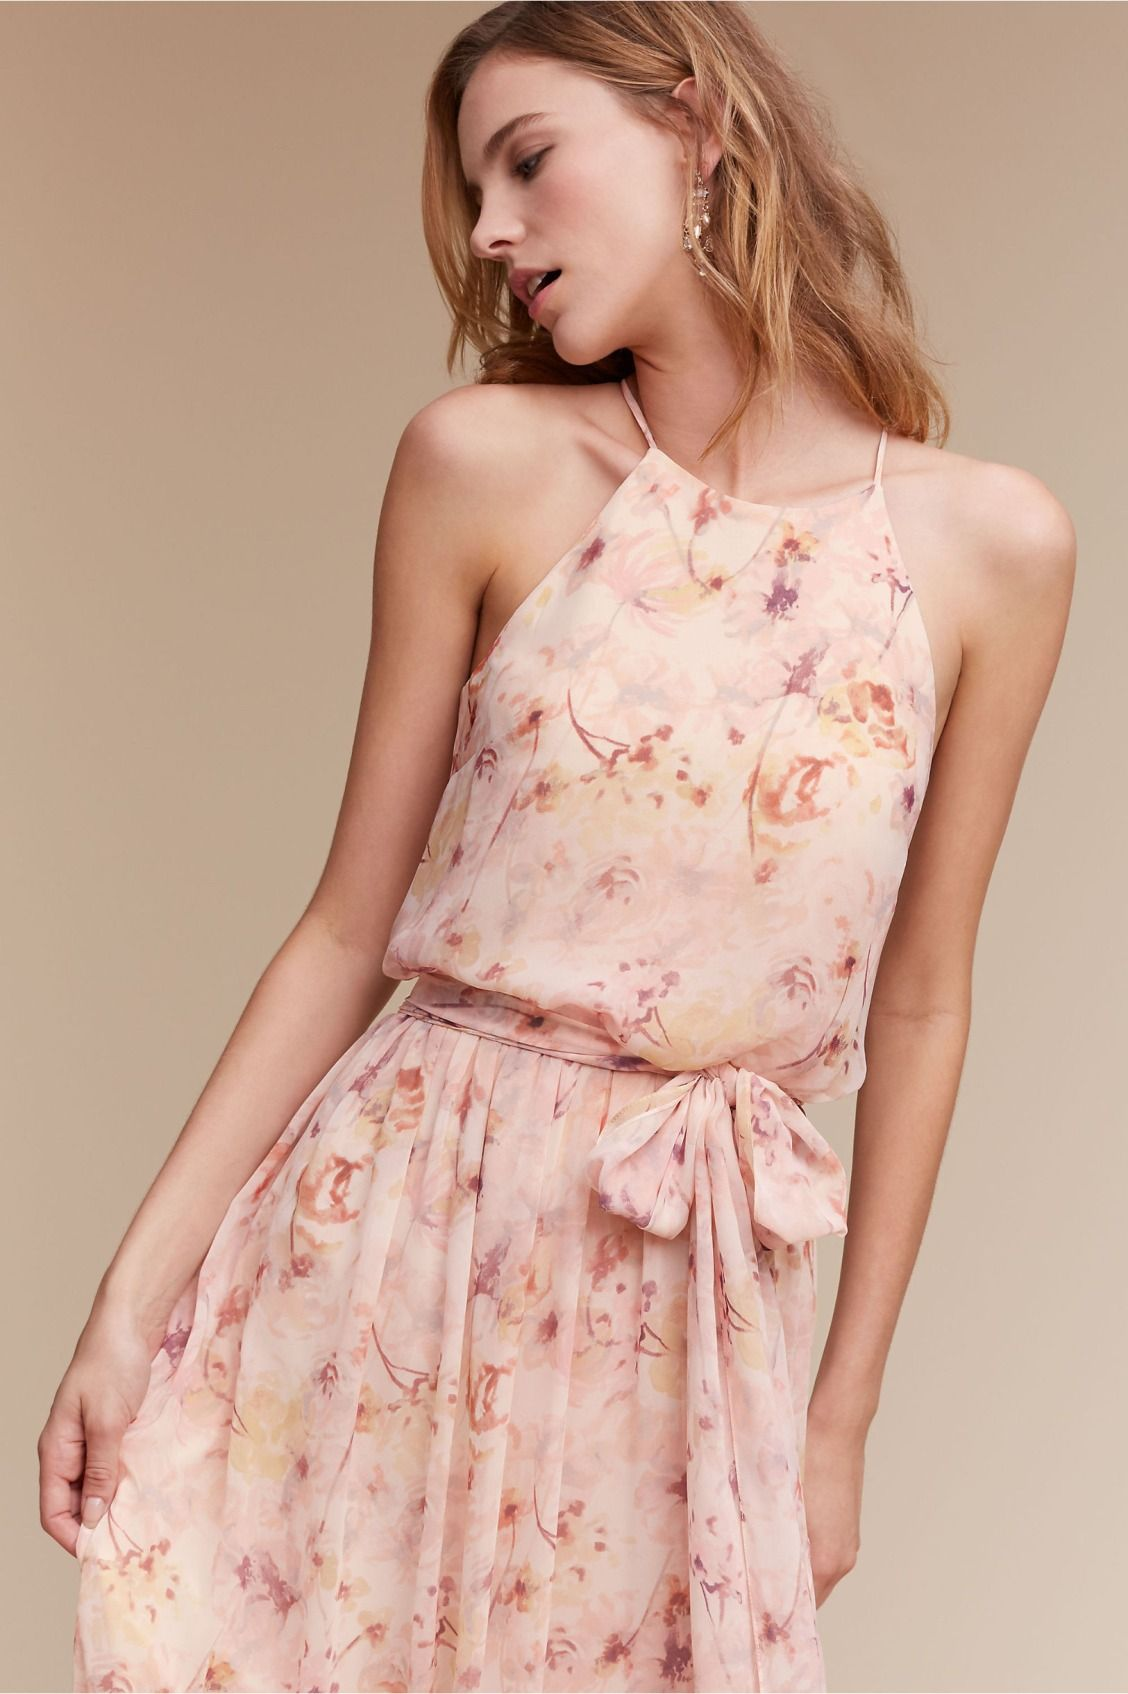 dusty hues bloom over this elegant chiffon | Alana Dress in Blush ...